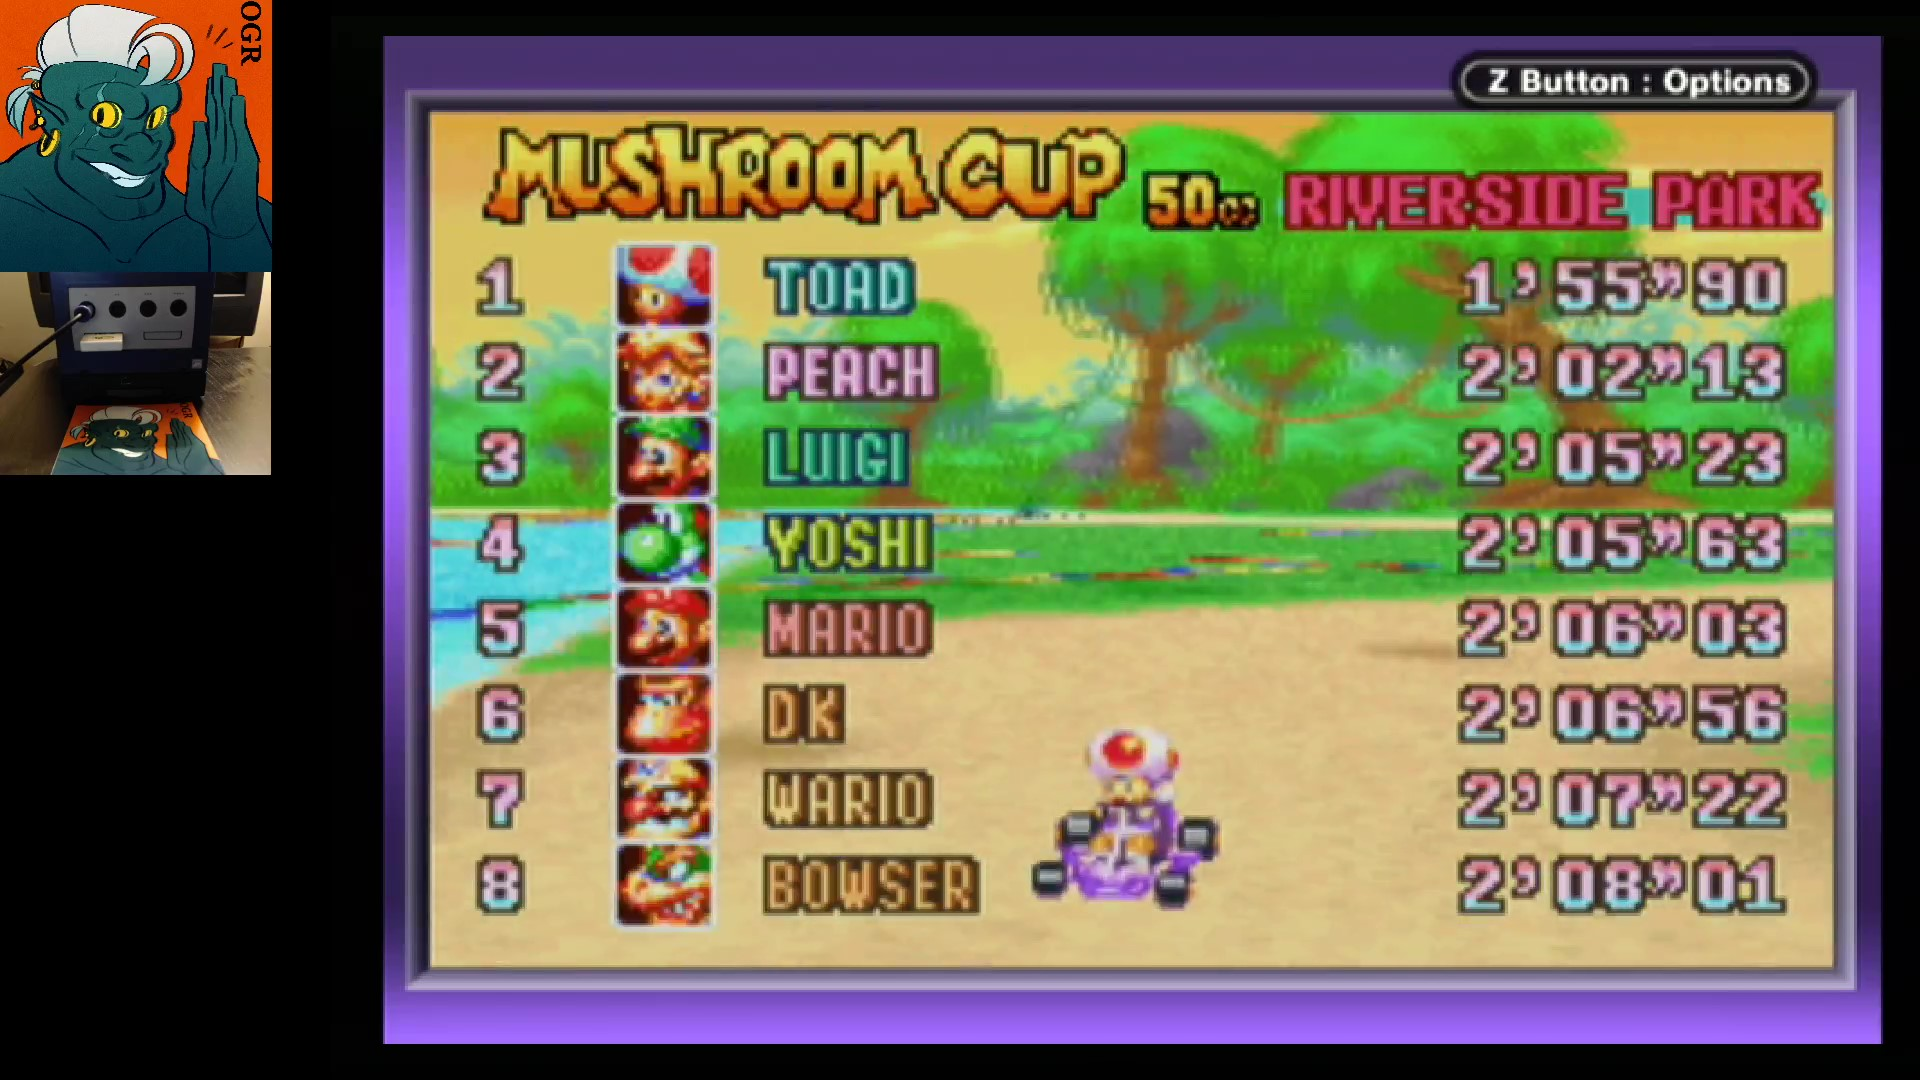 Mario Kart Super Circuit: Riverside Park [50cc] time of 0:01:55.9